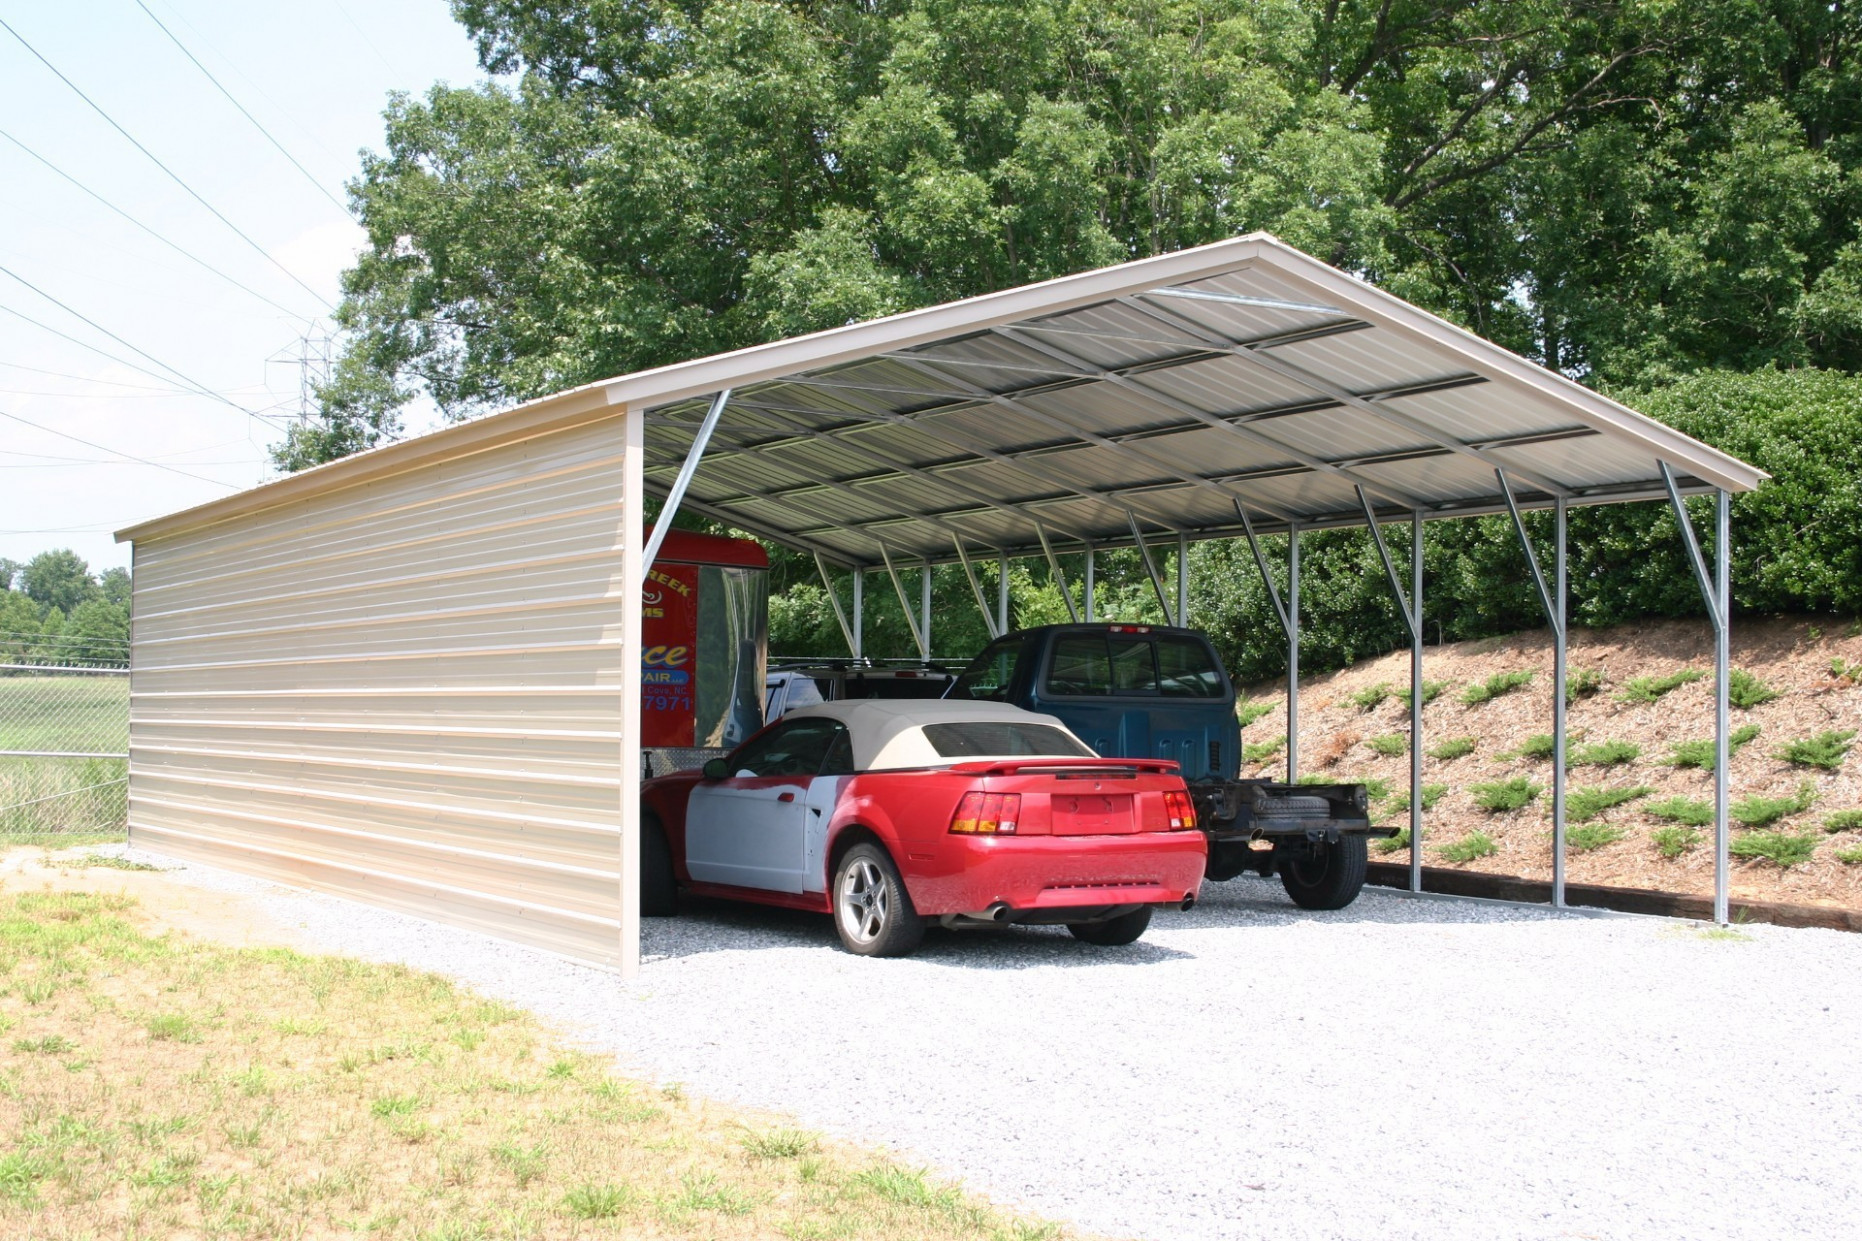 Kansas Carports | Metal Carports KS | Buy Kansas Carports Carolina Carports Garage